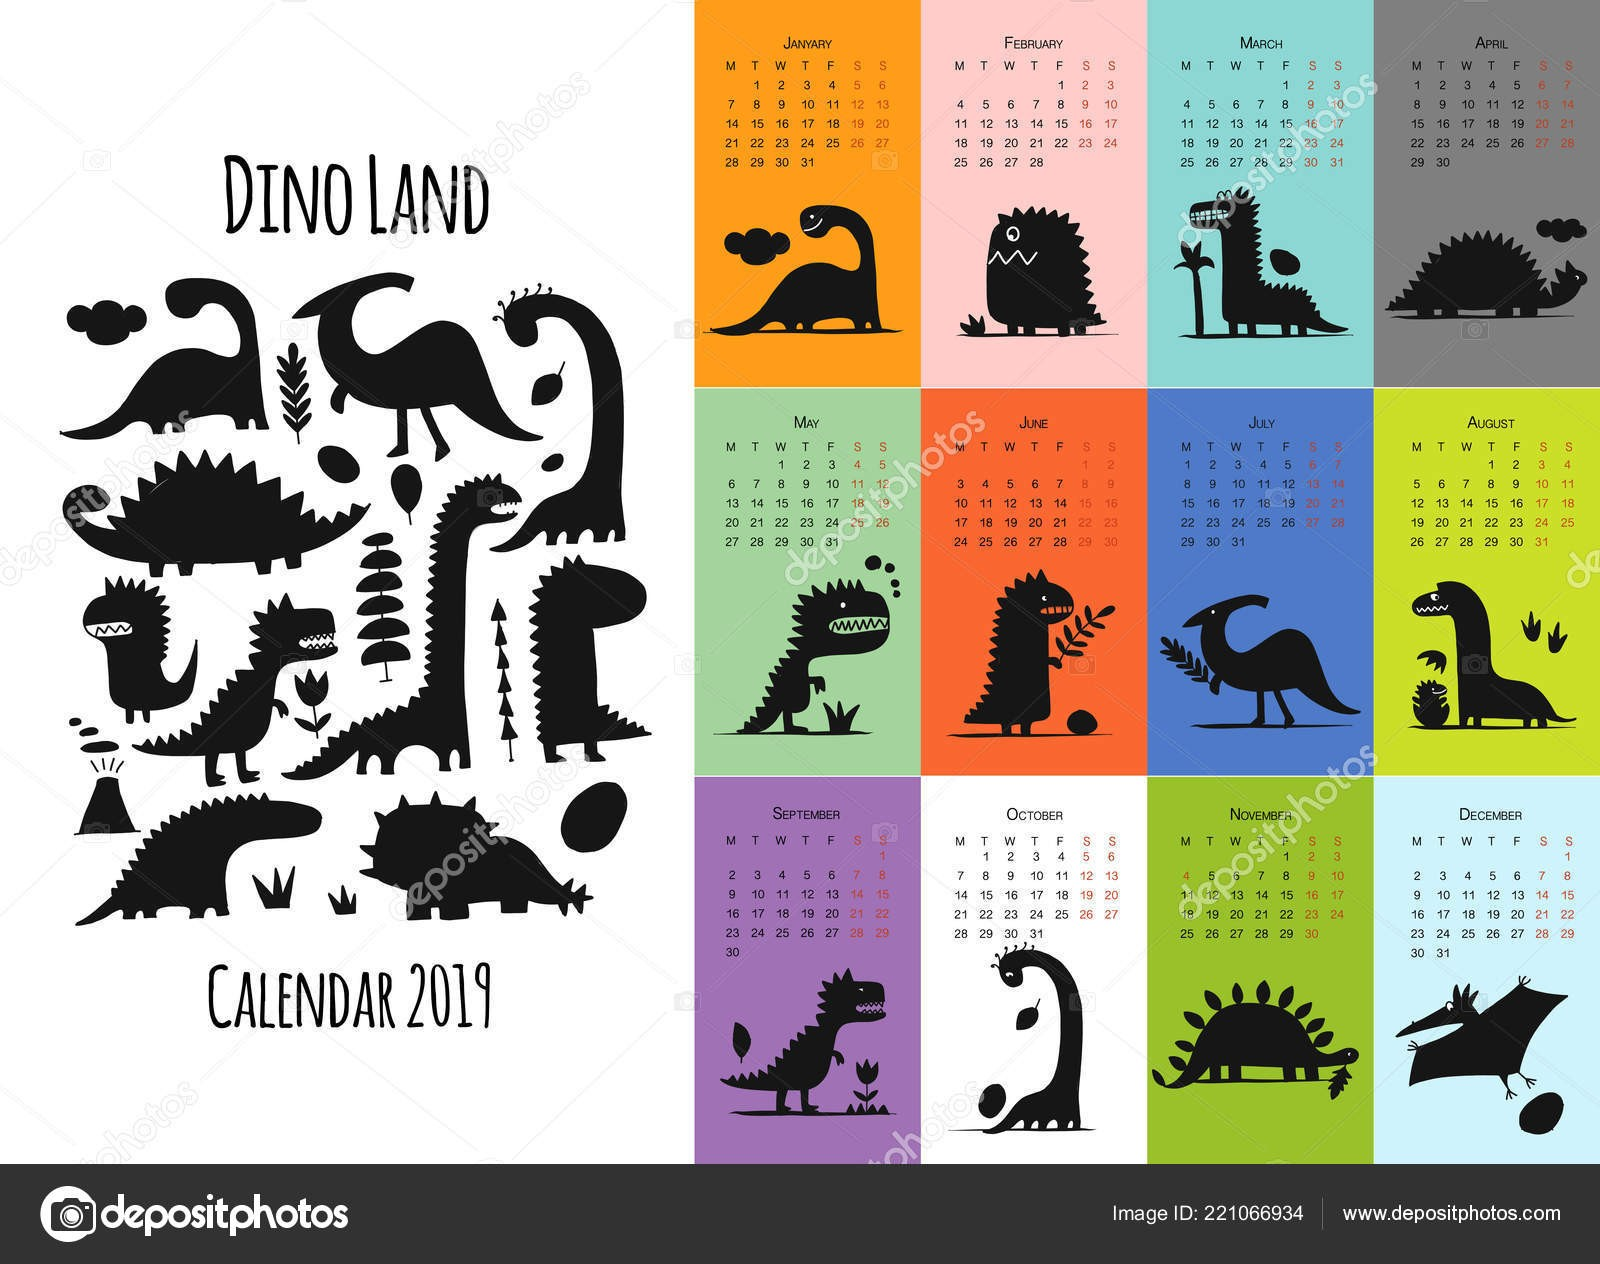 depositphotos stock illustration dinosaurs calendar 2019 design